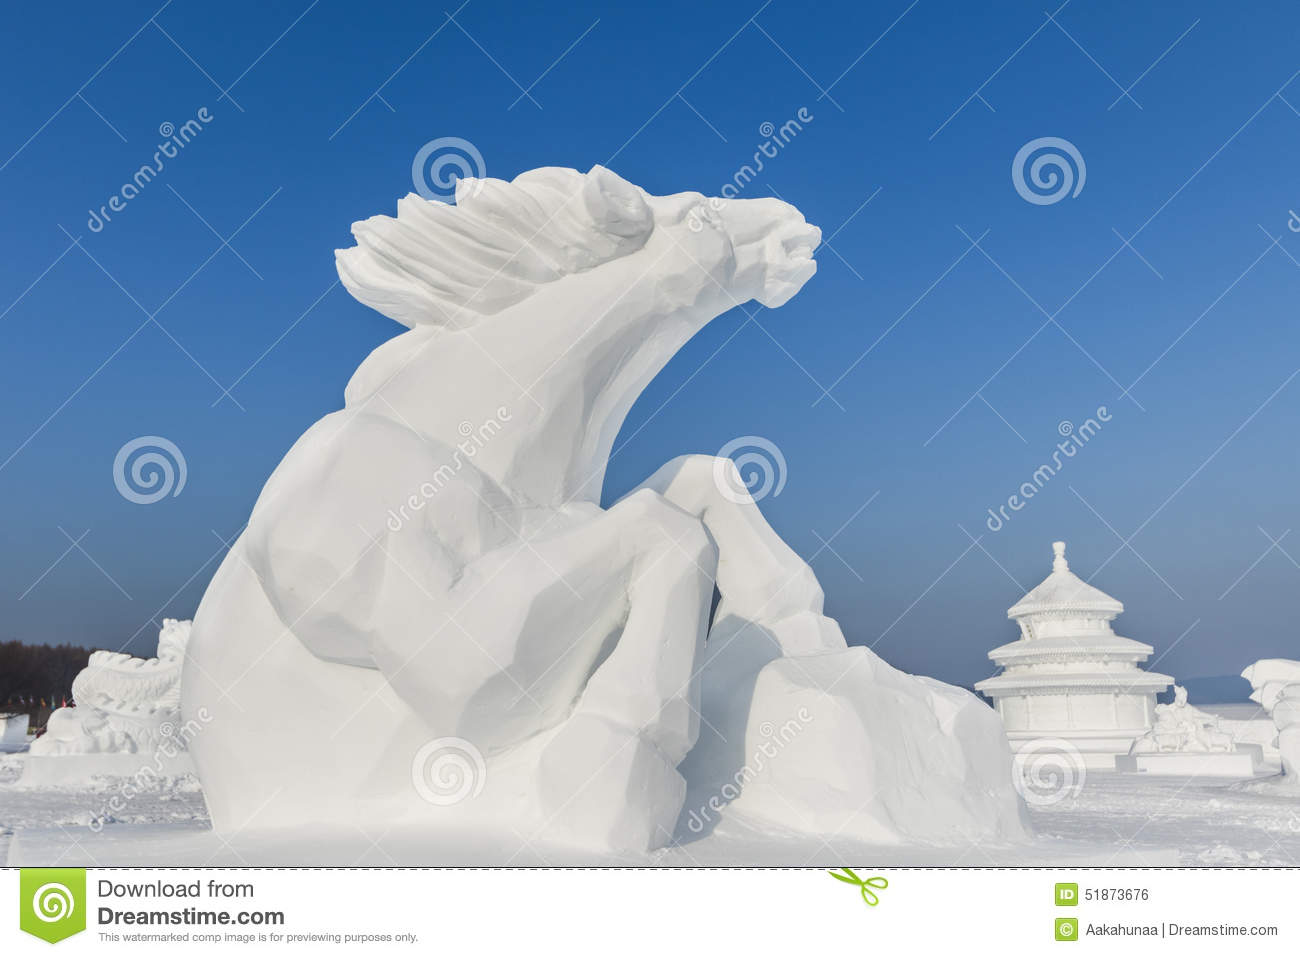 Winter Snow And Ice Sculpture Horses Stock Photo Image Of Horses White 51873676